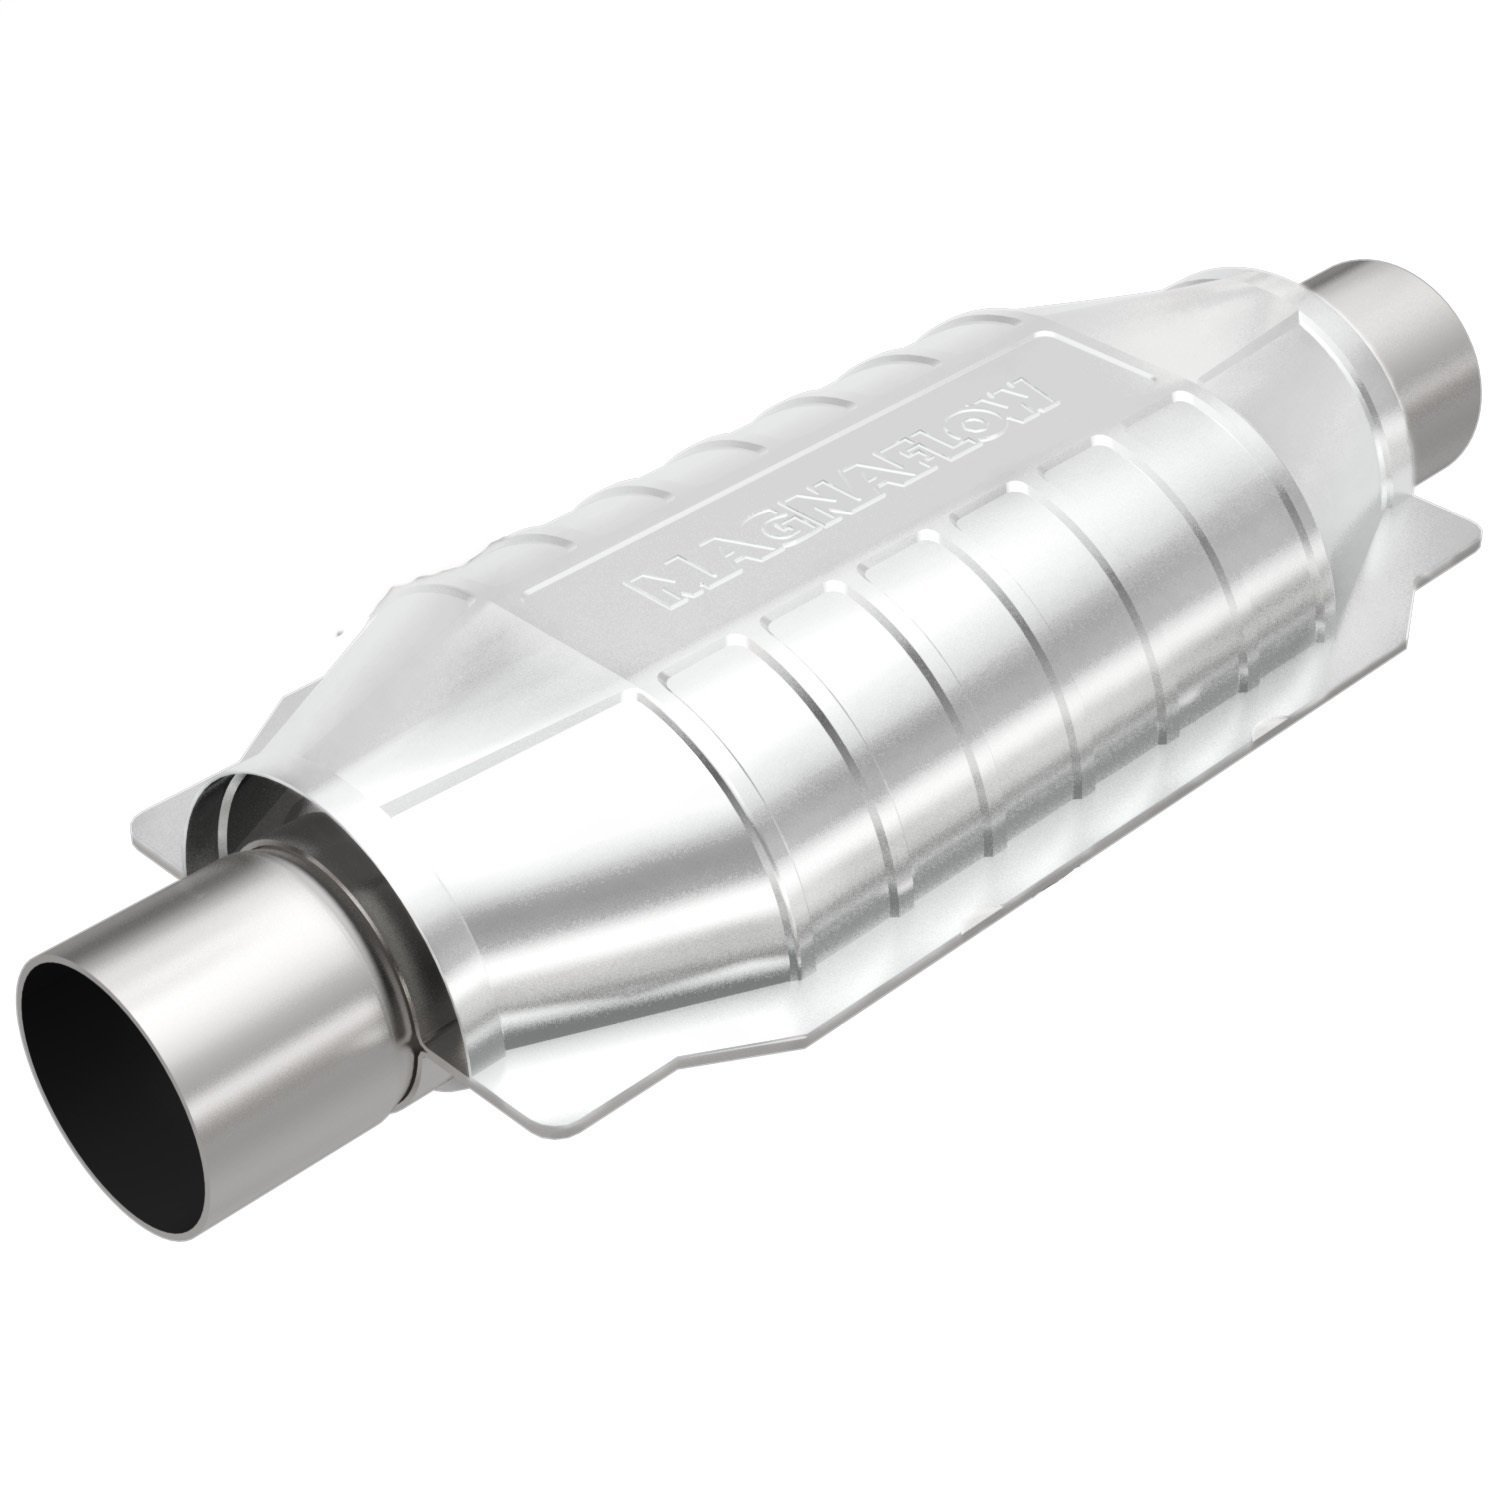 MagnaFlow 51006 Universal Catalytic Converter (Non CARB Compliant) by MagnaFlow Exhaust Products